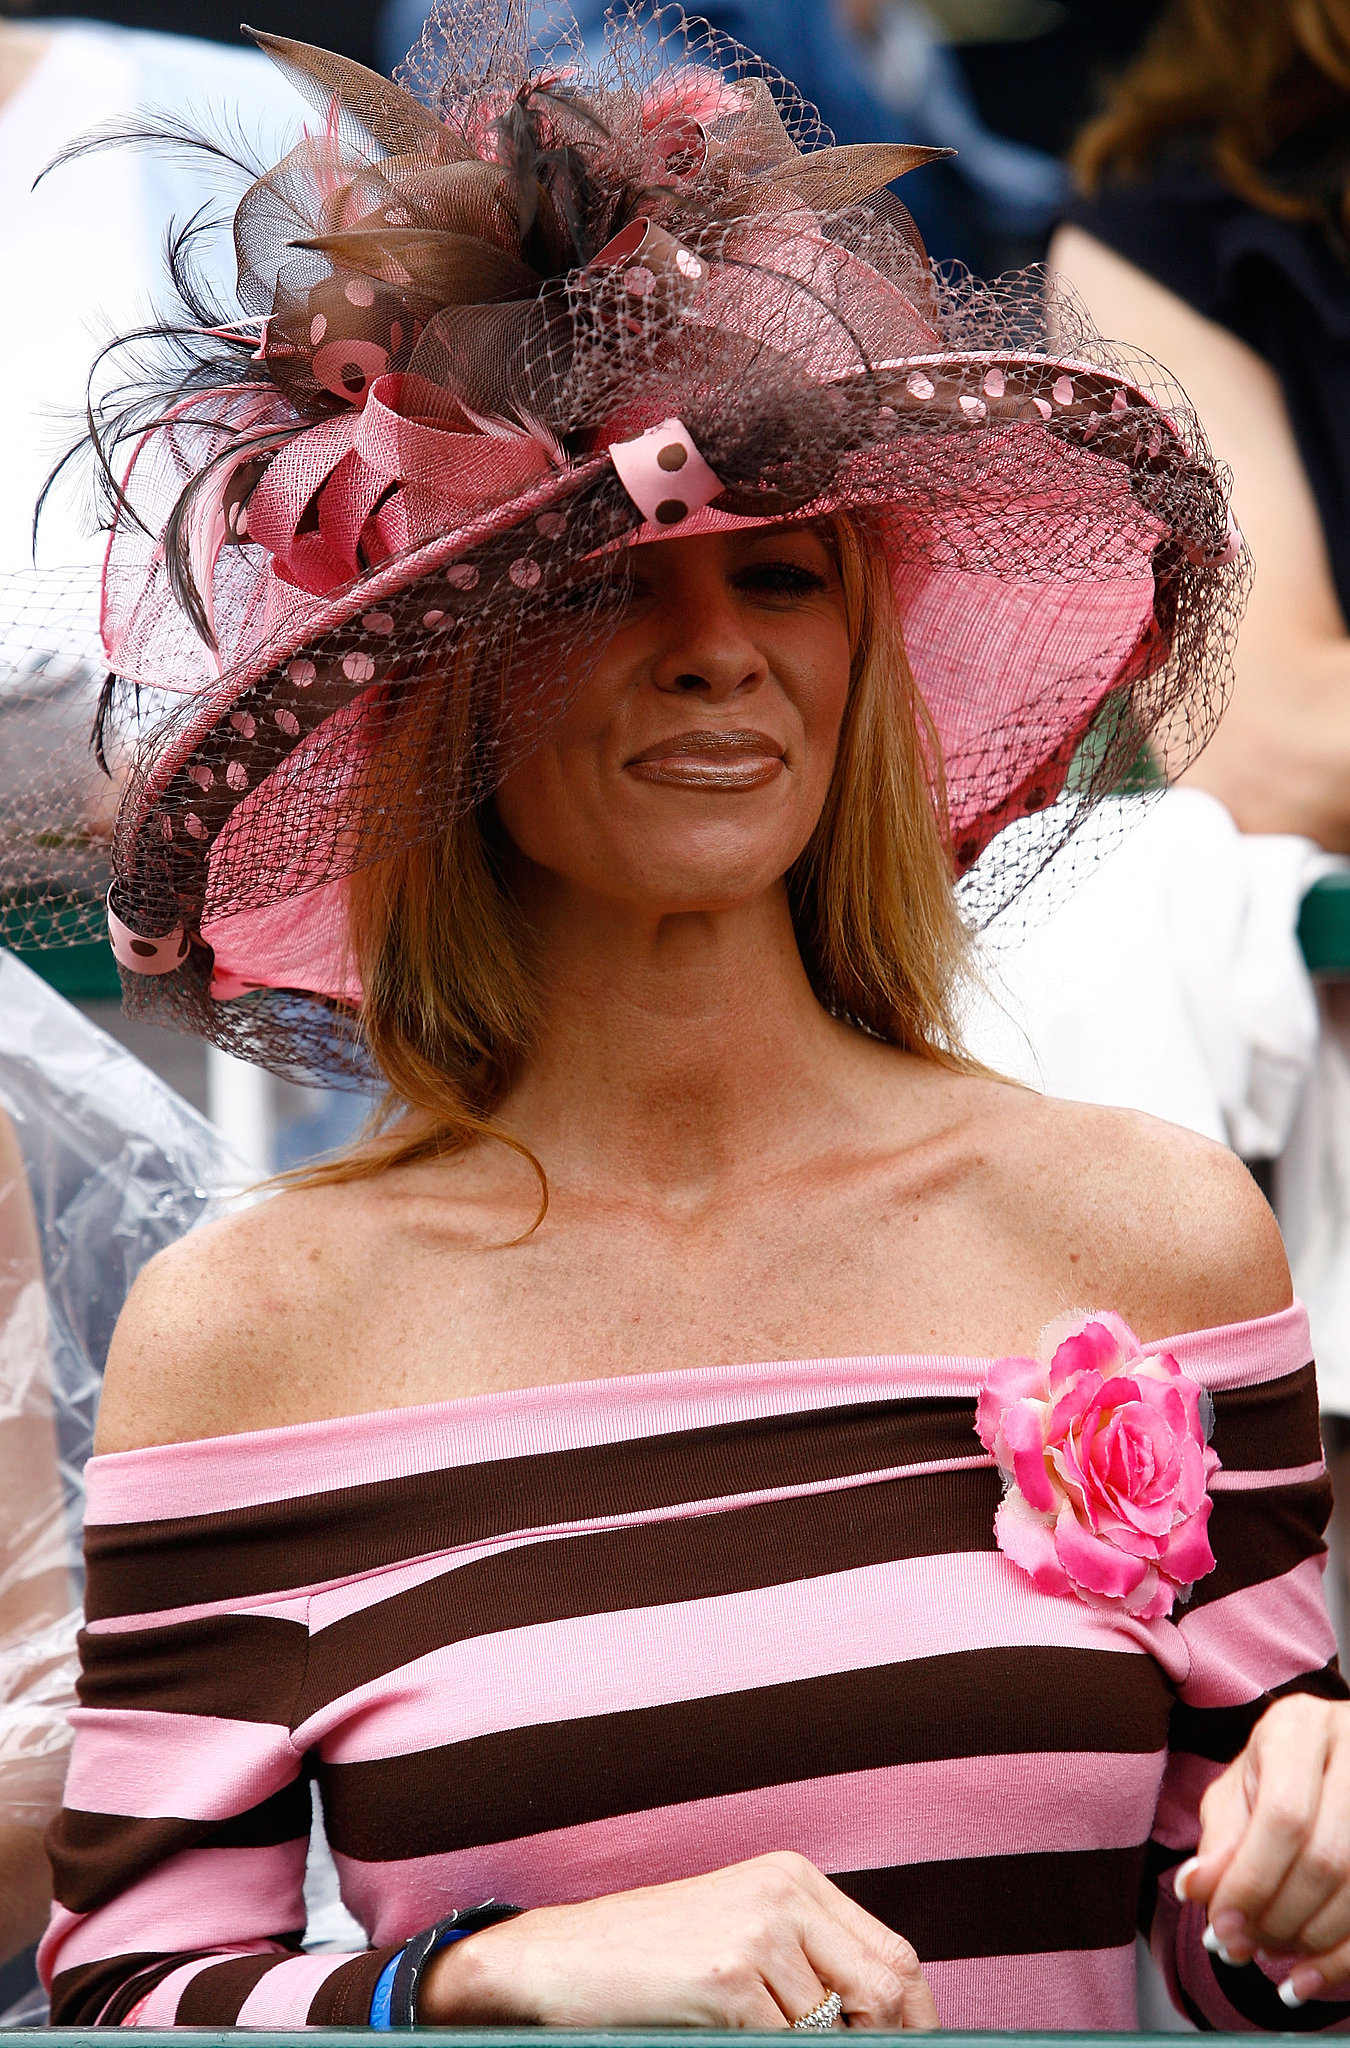 A spectator looked on as races were run the day before the running of the 133rd Kentucky Derby on May 4, 2007.